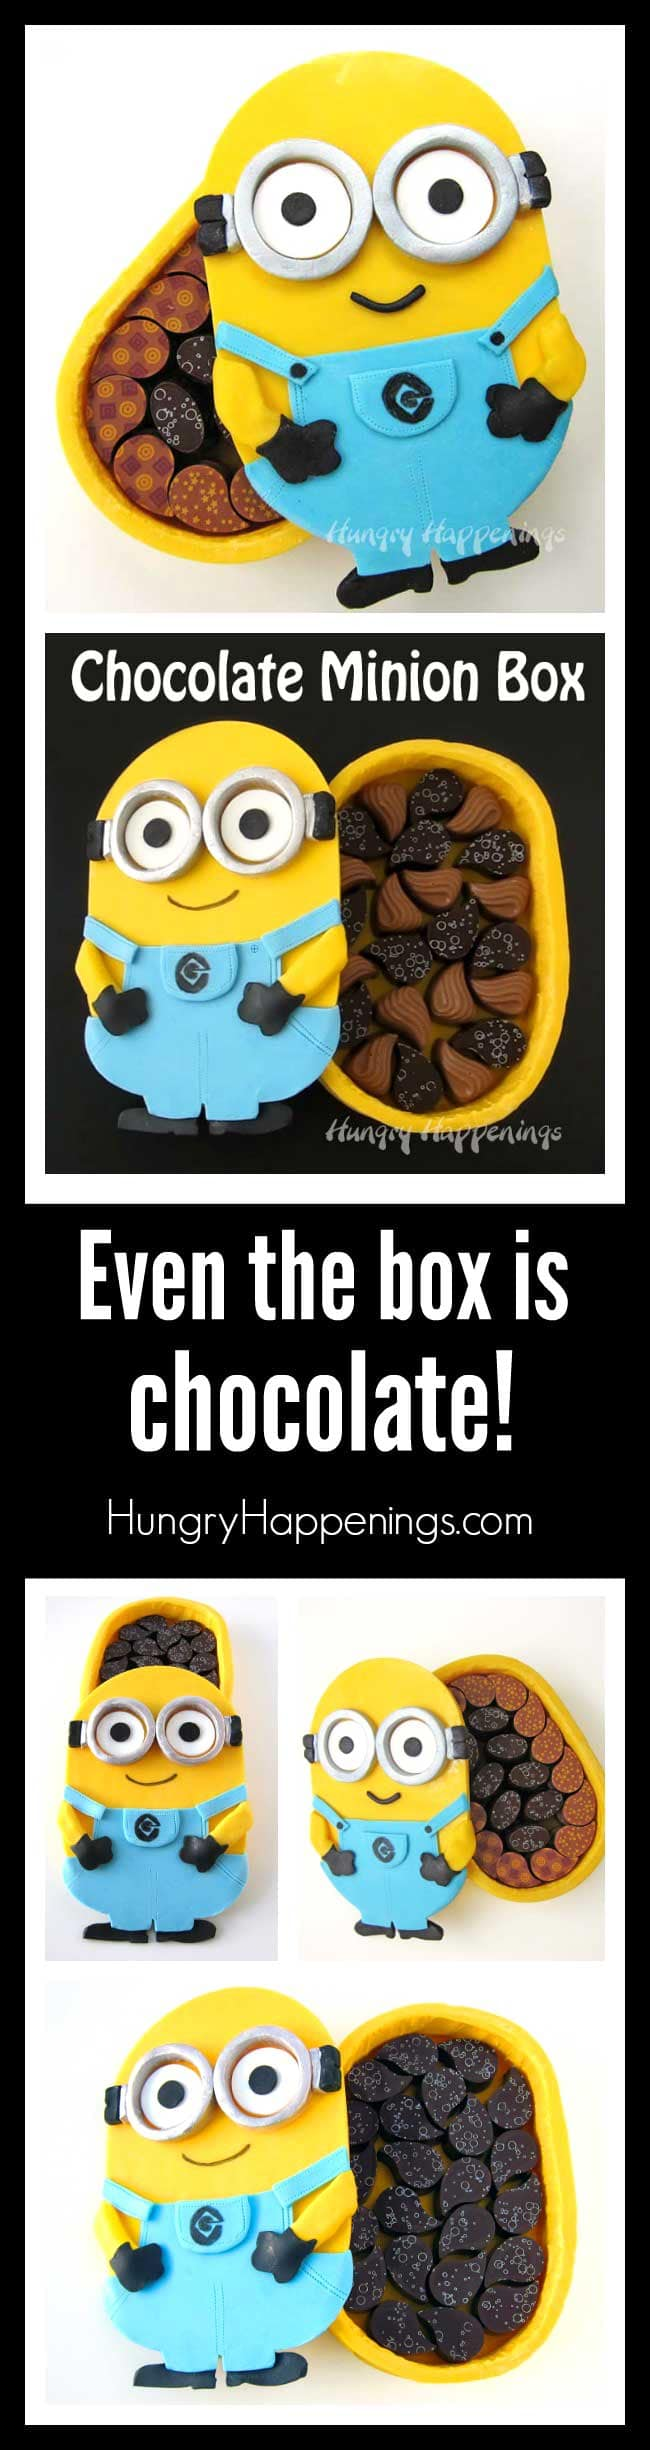 Create an entirely edible Chocolate Minion Box that is decorated with candy clay (modeling chocolate) and is filled with your favorite chocolates. The WHOLE BOX IS CHOCOLATE!!!